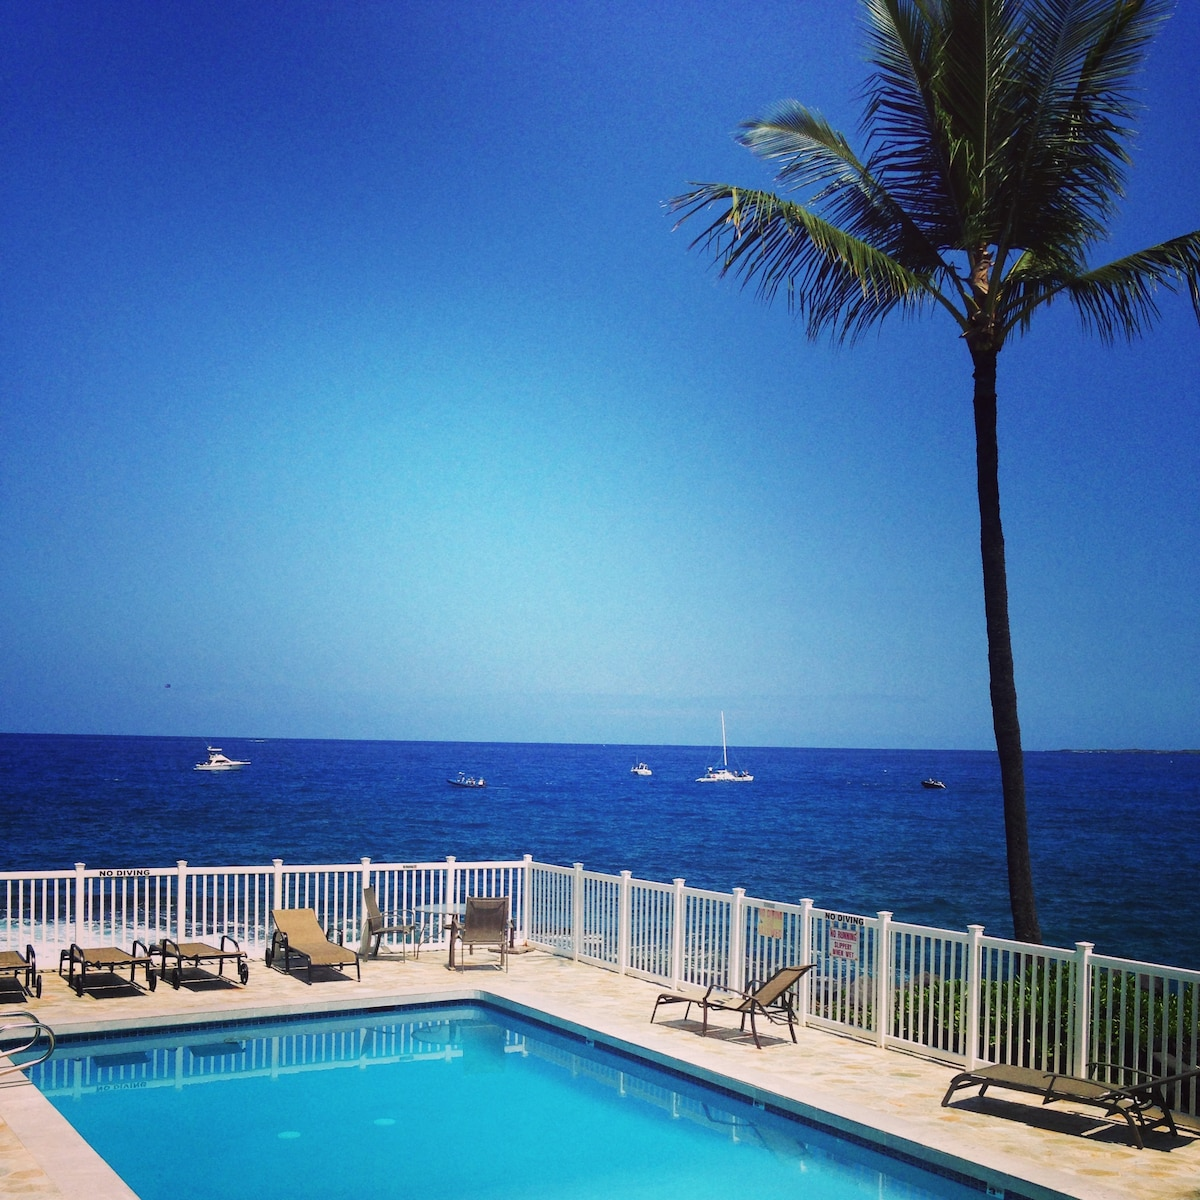 Enjoy sweeping ocean views from your pool chair